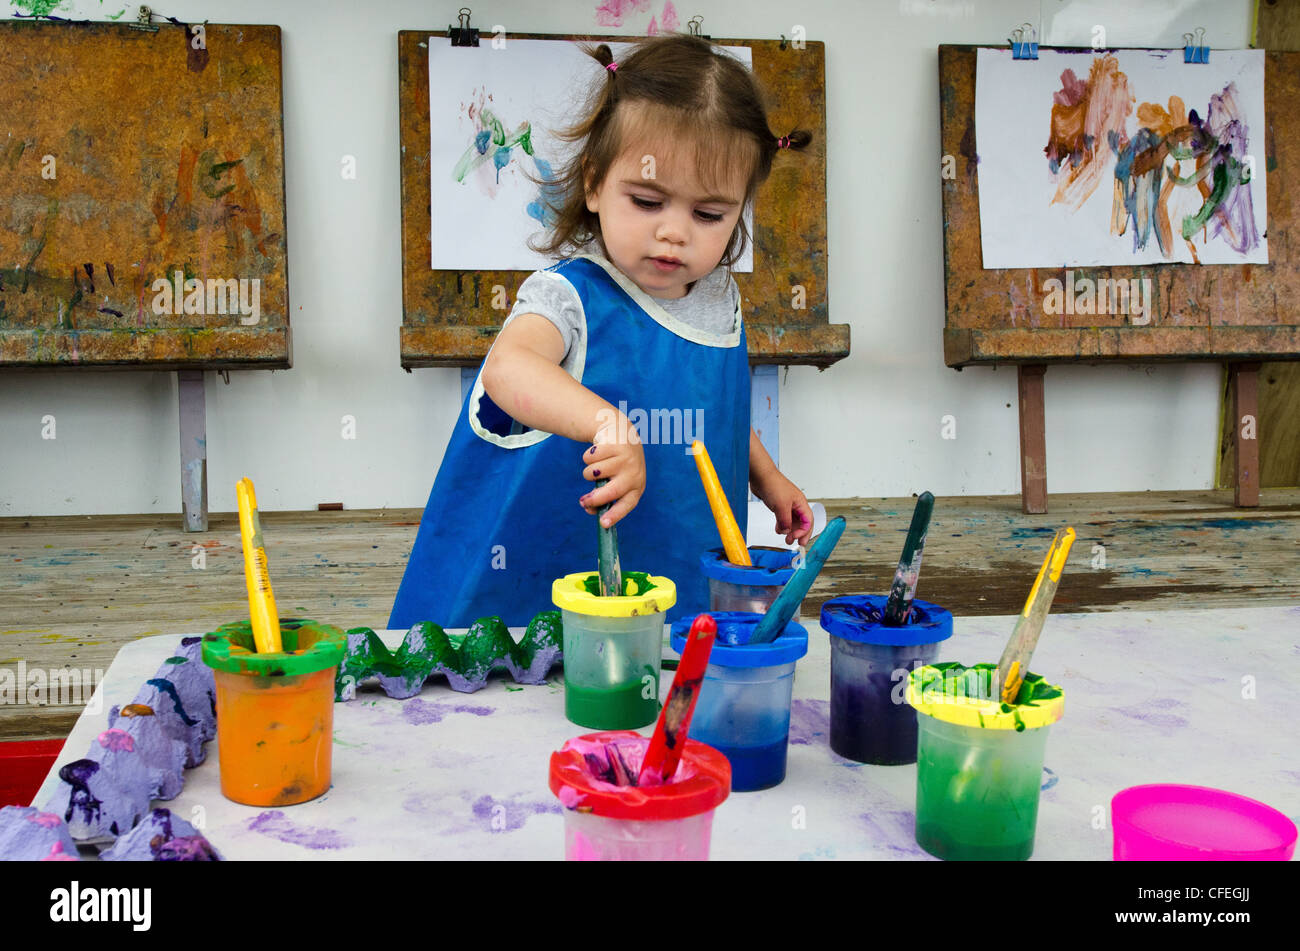 Little girl paints at a playground - Stock Image